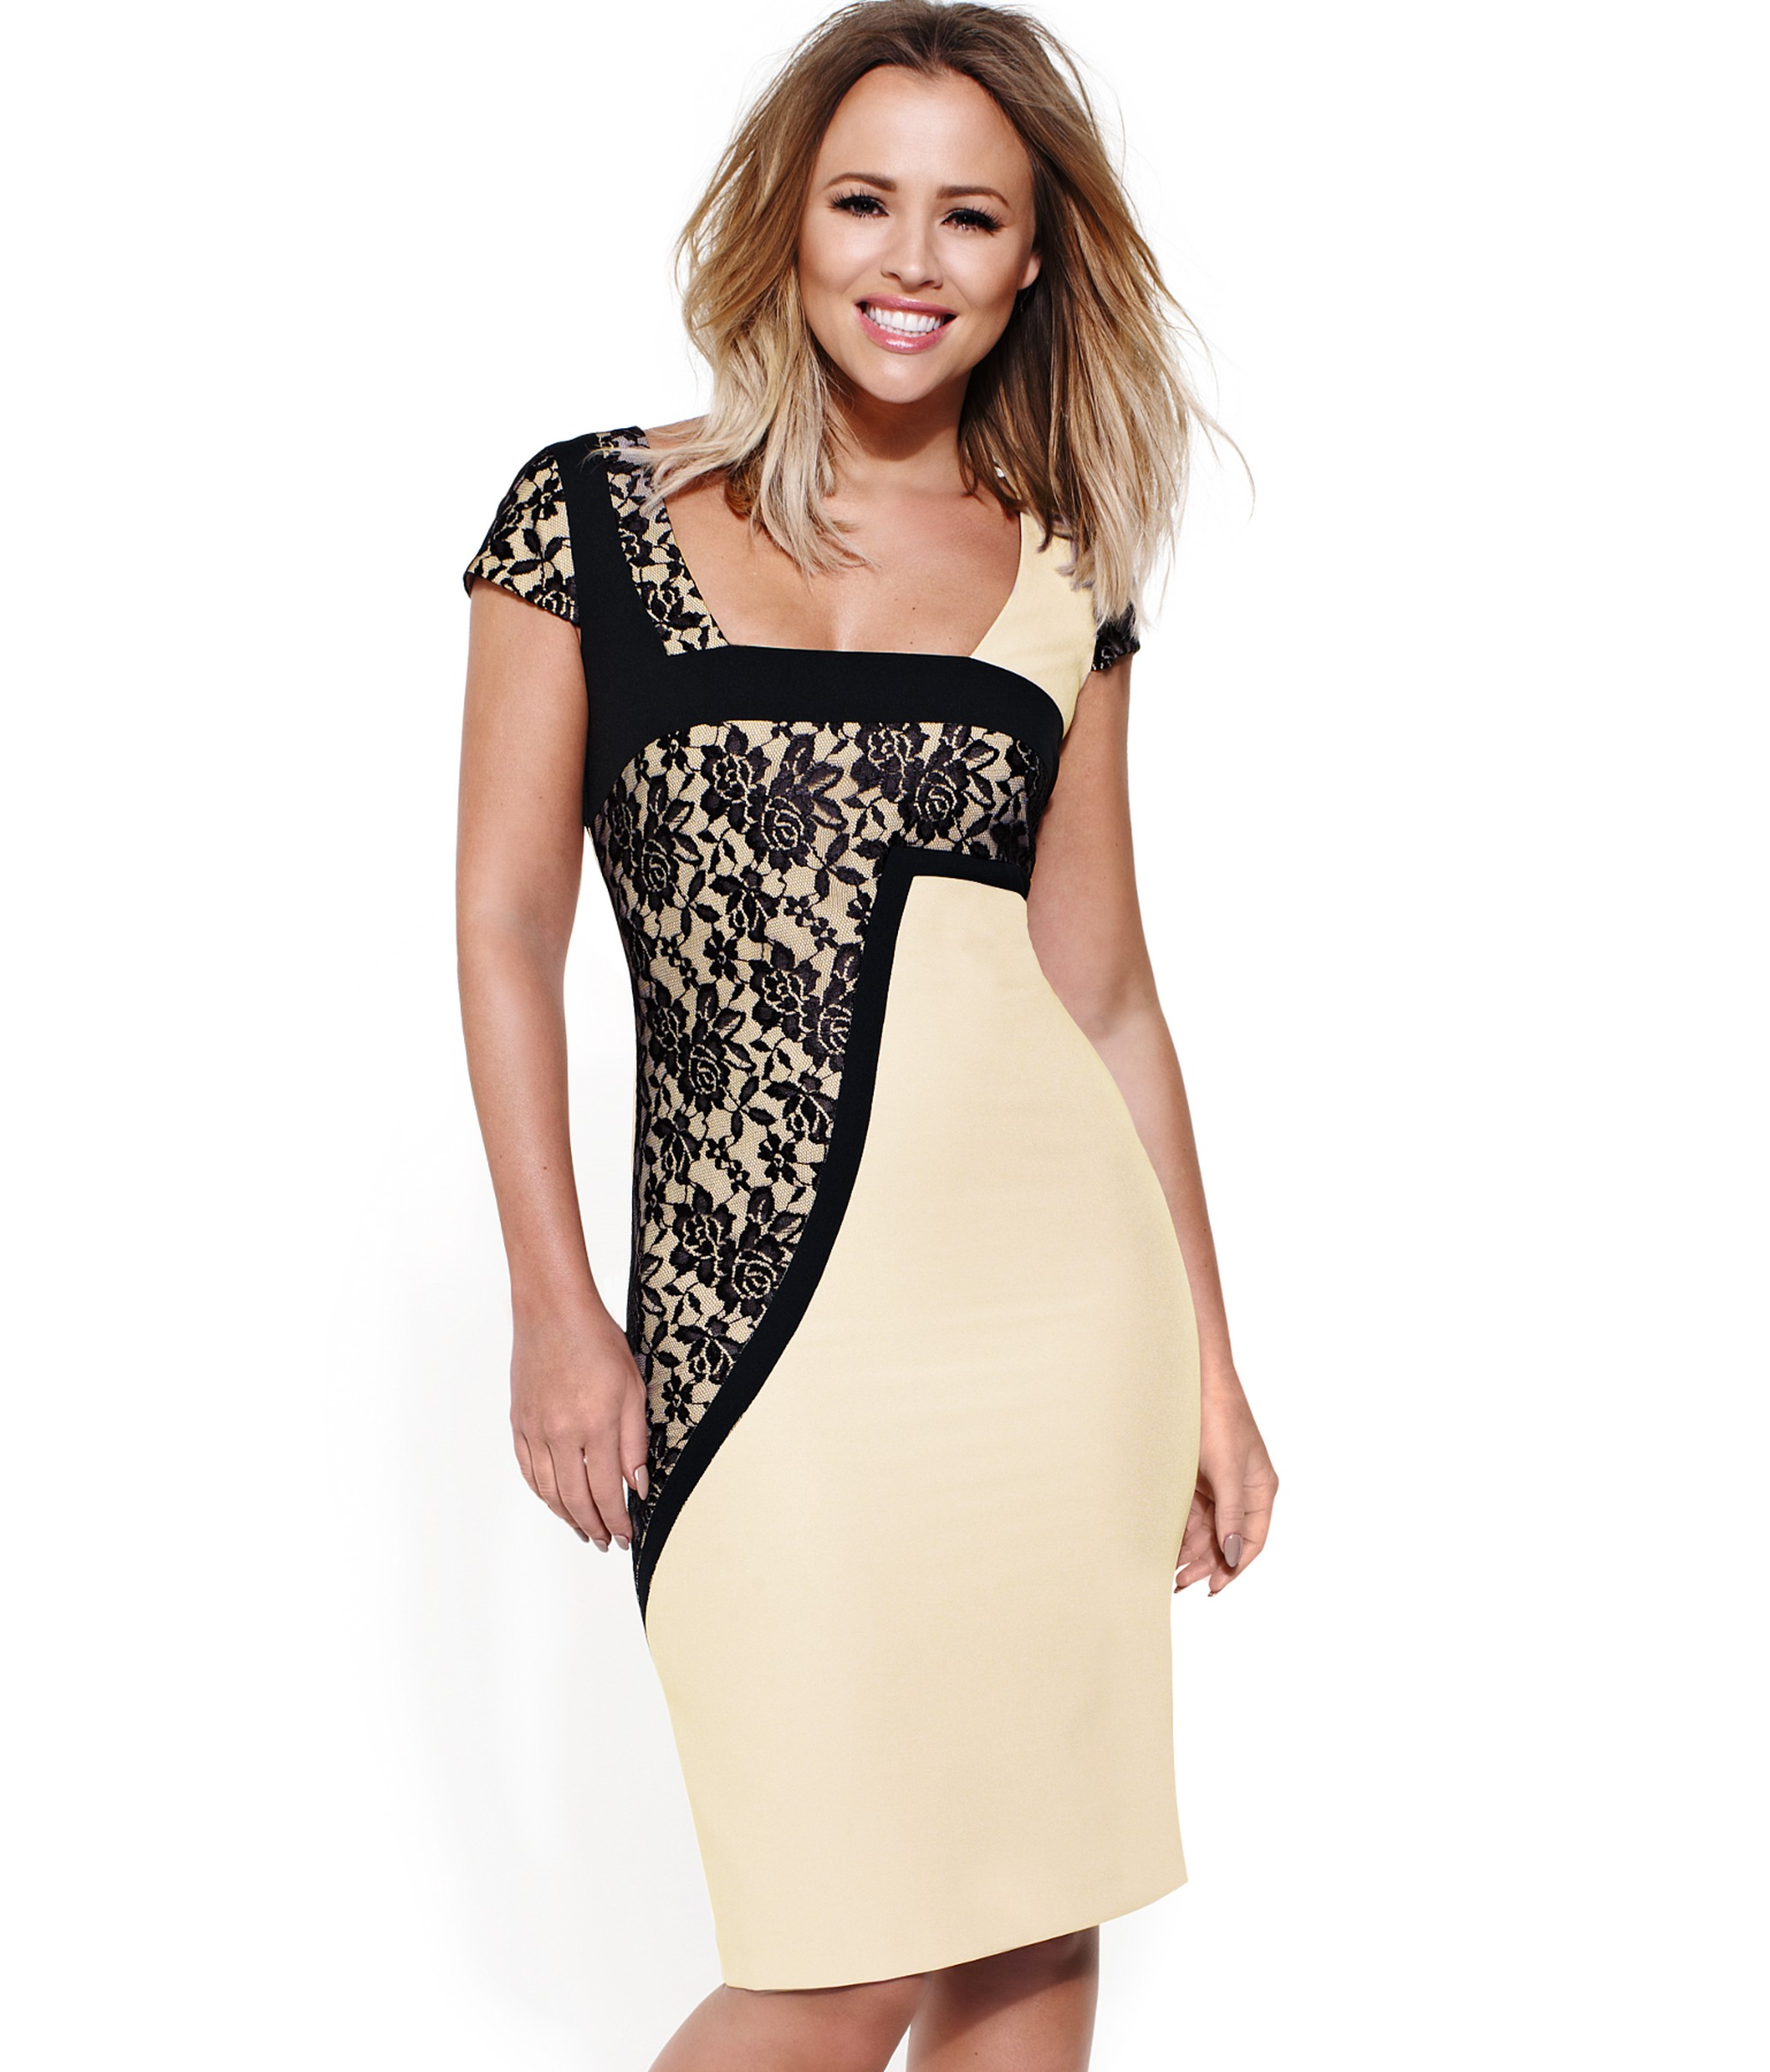 KimberleyWalsh_co_uk-088.jpg